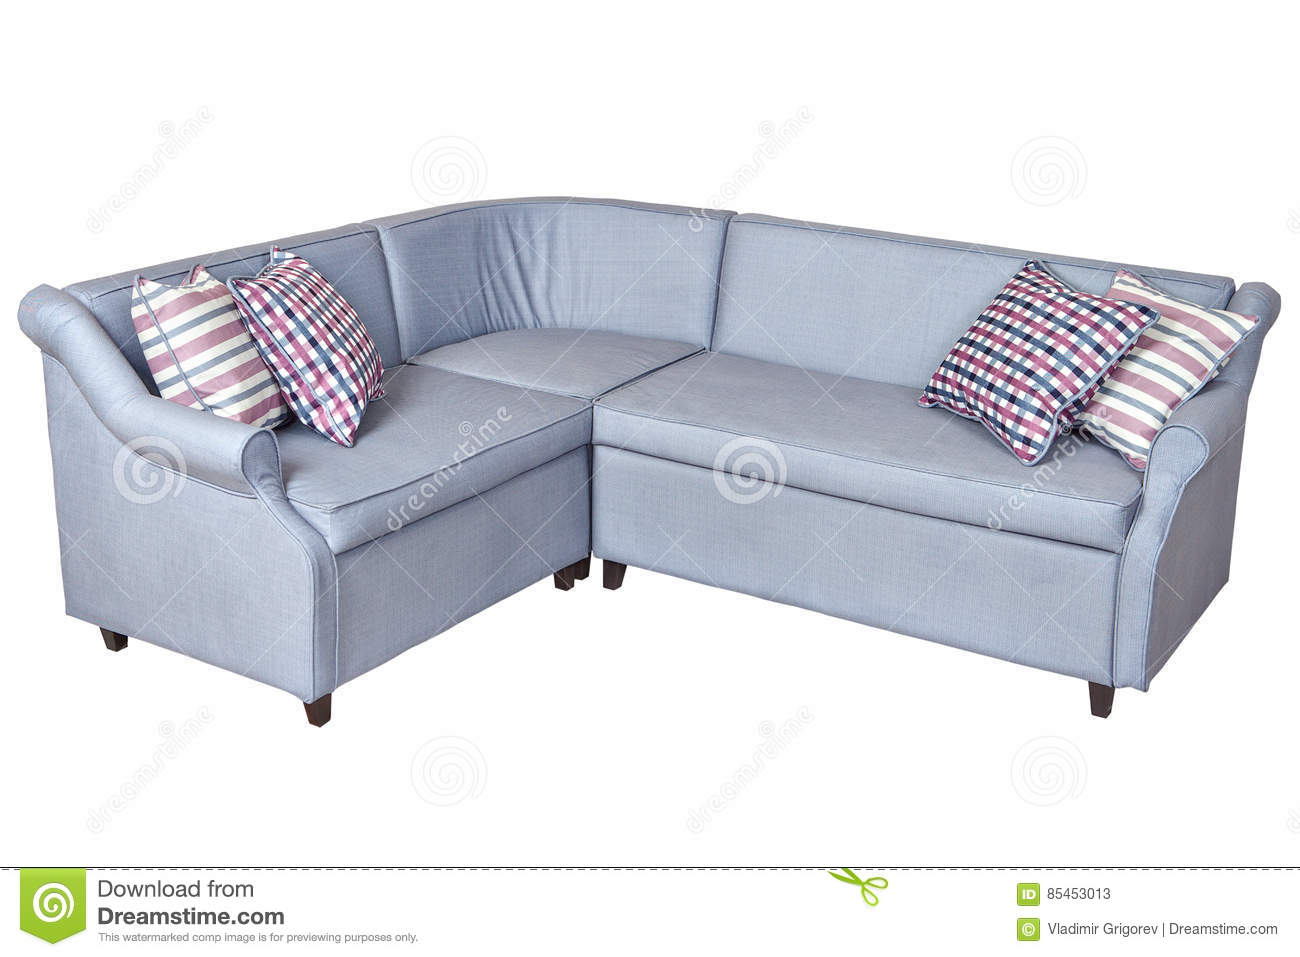 Picture of: Light Gray Corner Fold Out Upholstered In Fabric Sofa Bed Isol Stock Image Image Of Modern Small 85453013